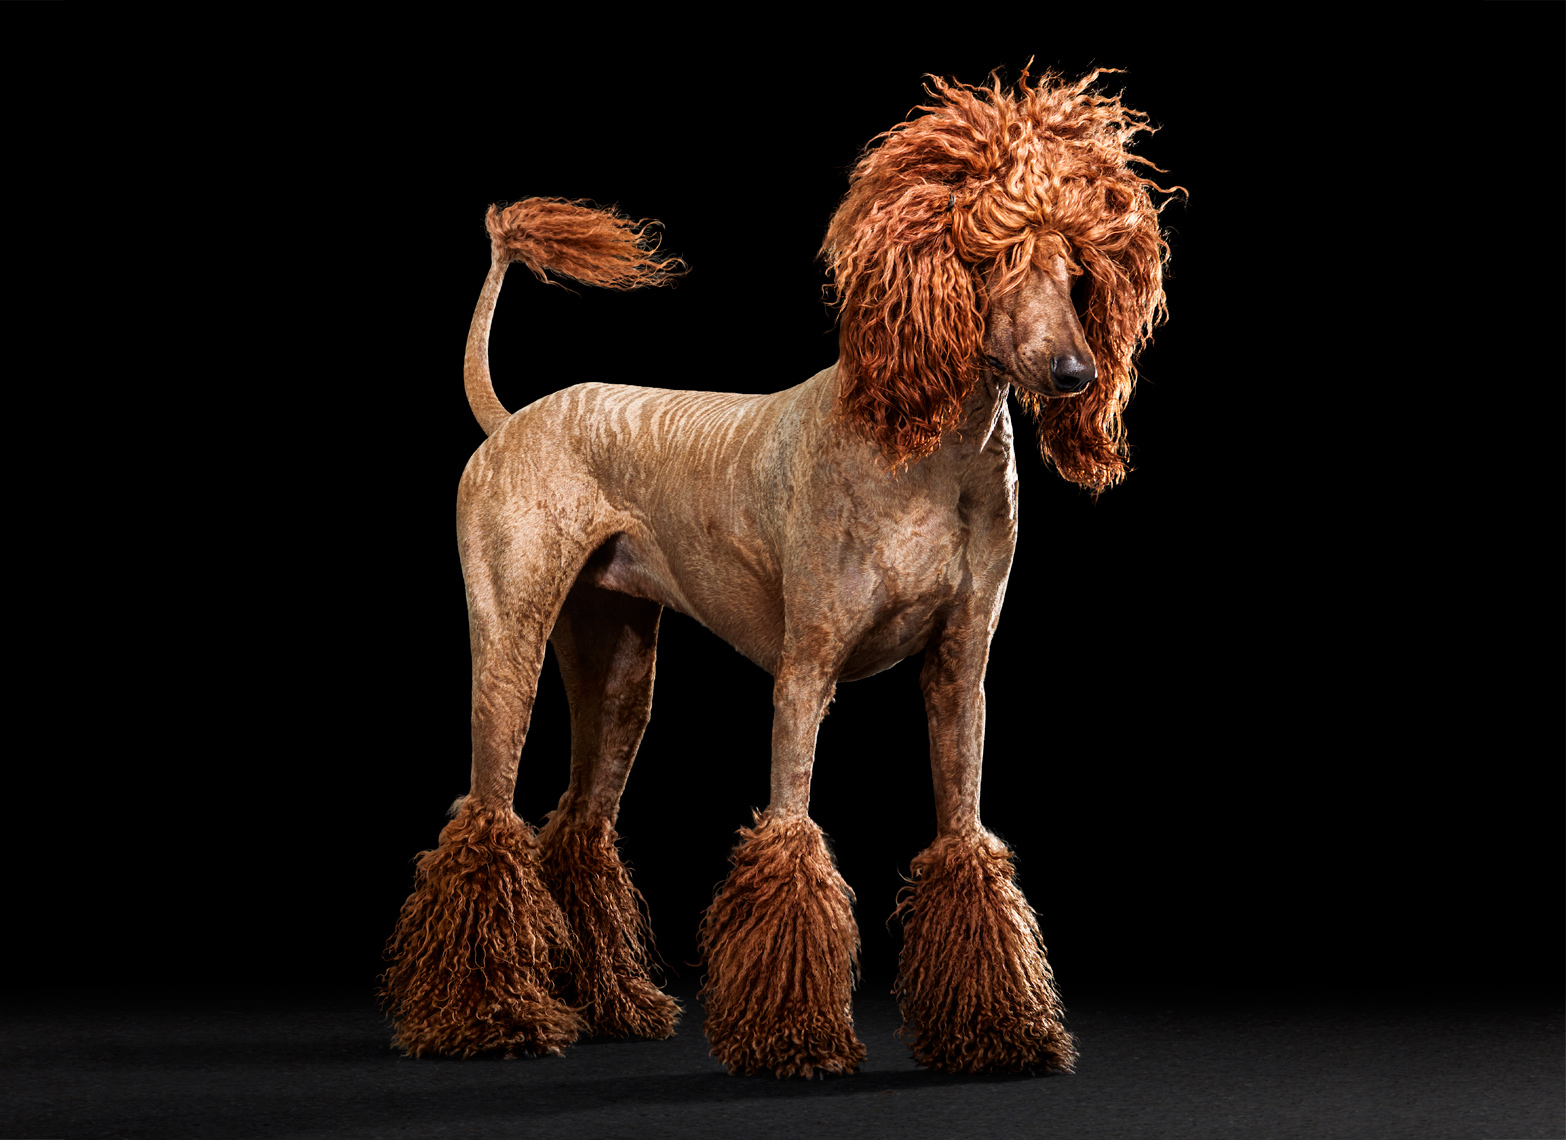 Poodle dog with pony hair cut